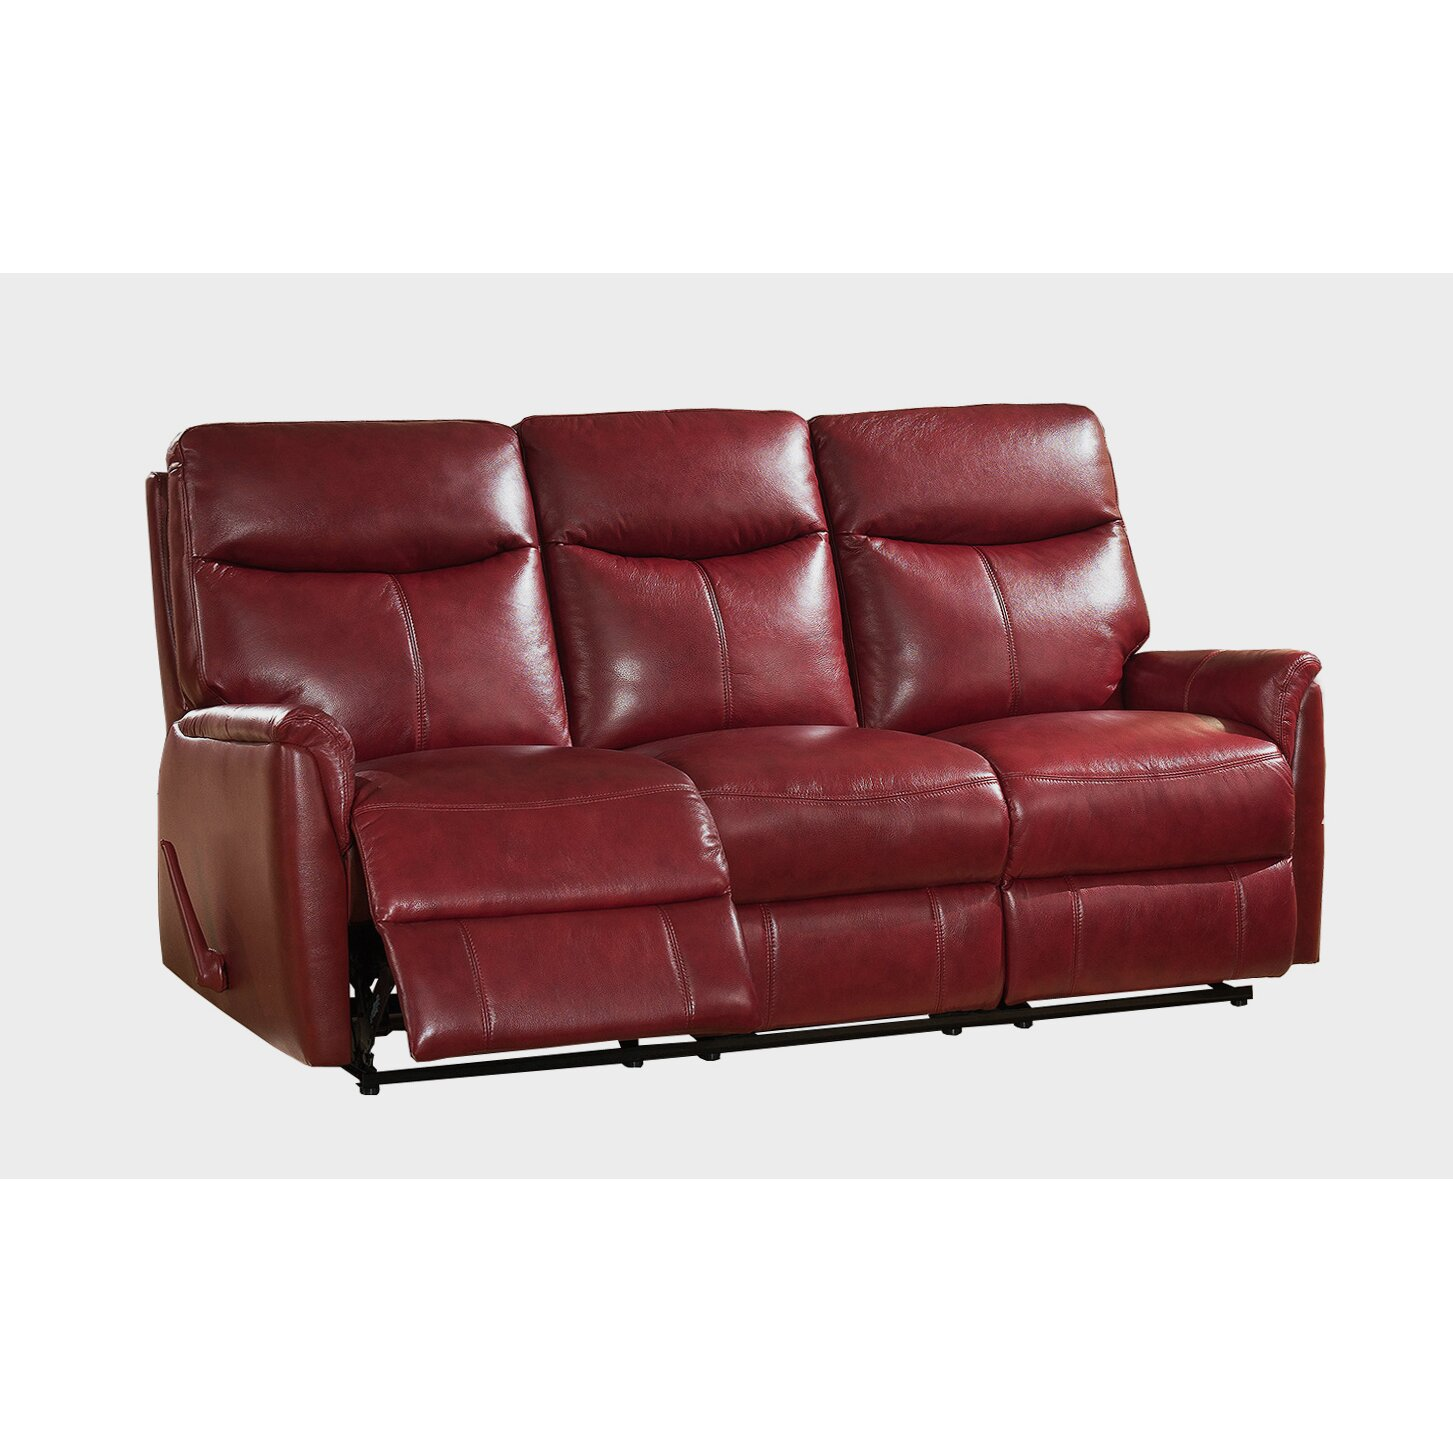 Amax napa top grain leather lay flat reclining sofa and loveseat set wayfair Leather reclining loveseat